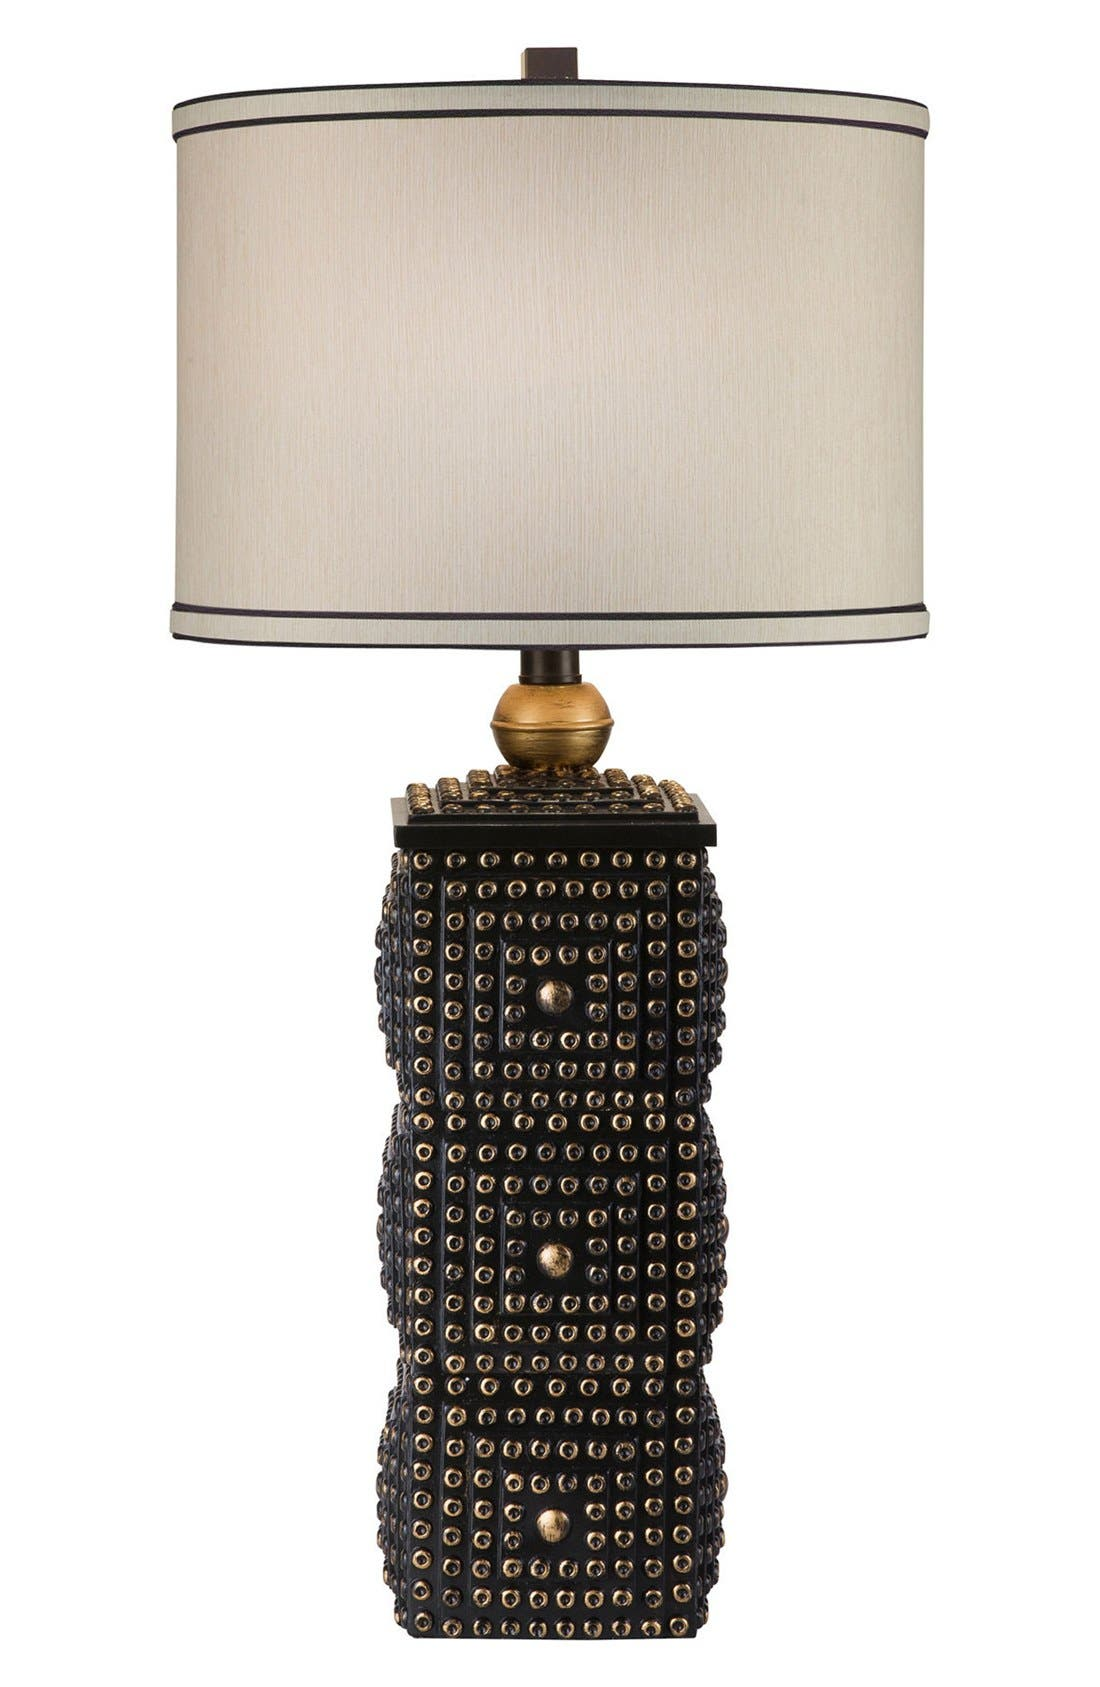 JALEXANDER LIGHTING JAlexander Square Stacked Table Lamp